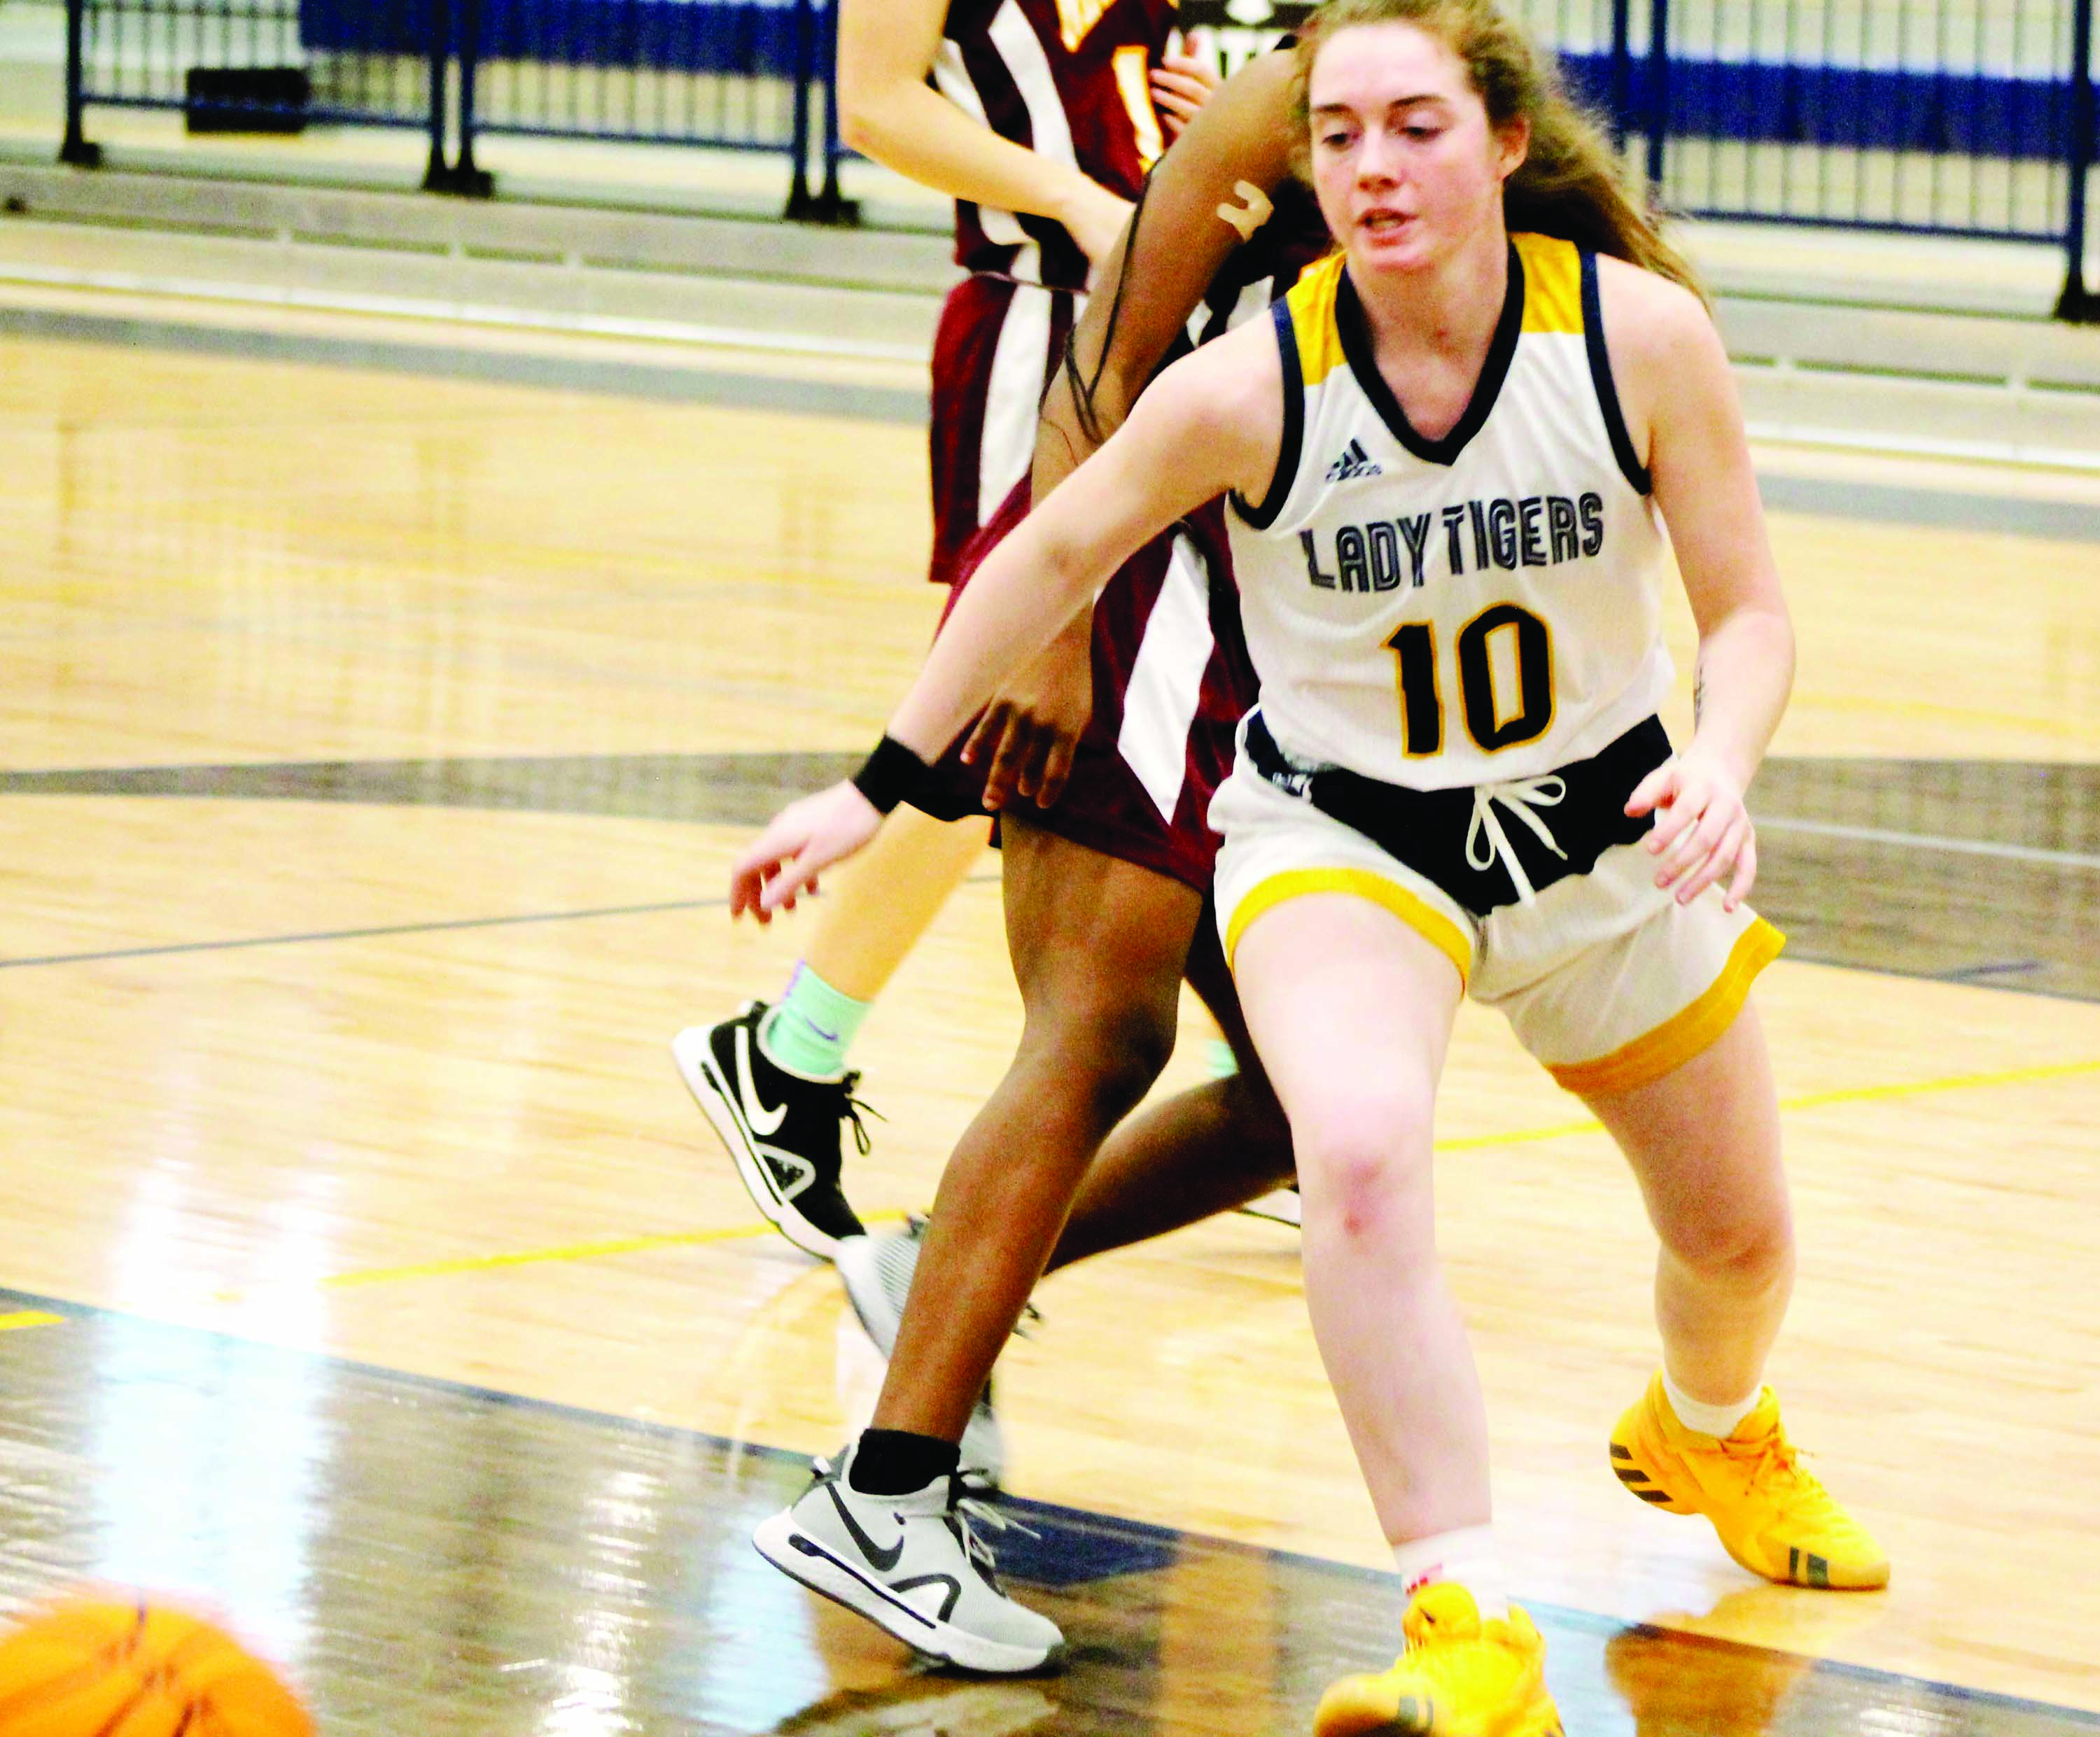 New Hampstead is Shellshocked, Lady Tigers Win by 42 Points